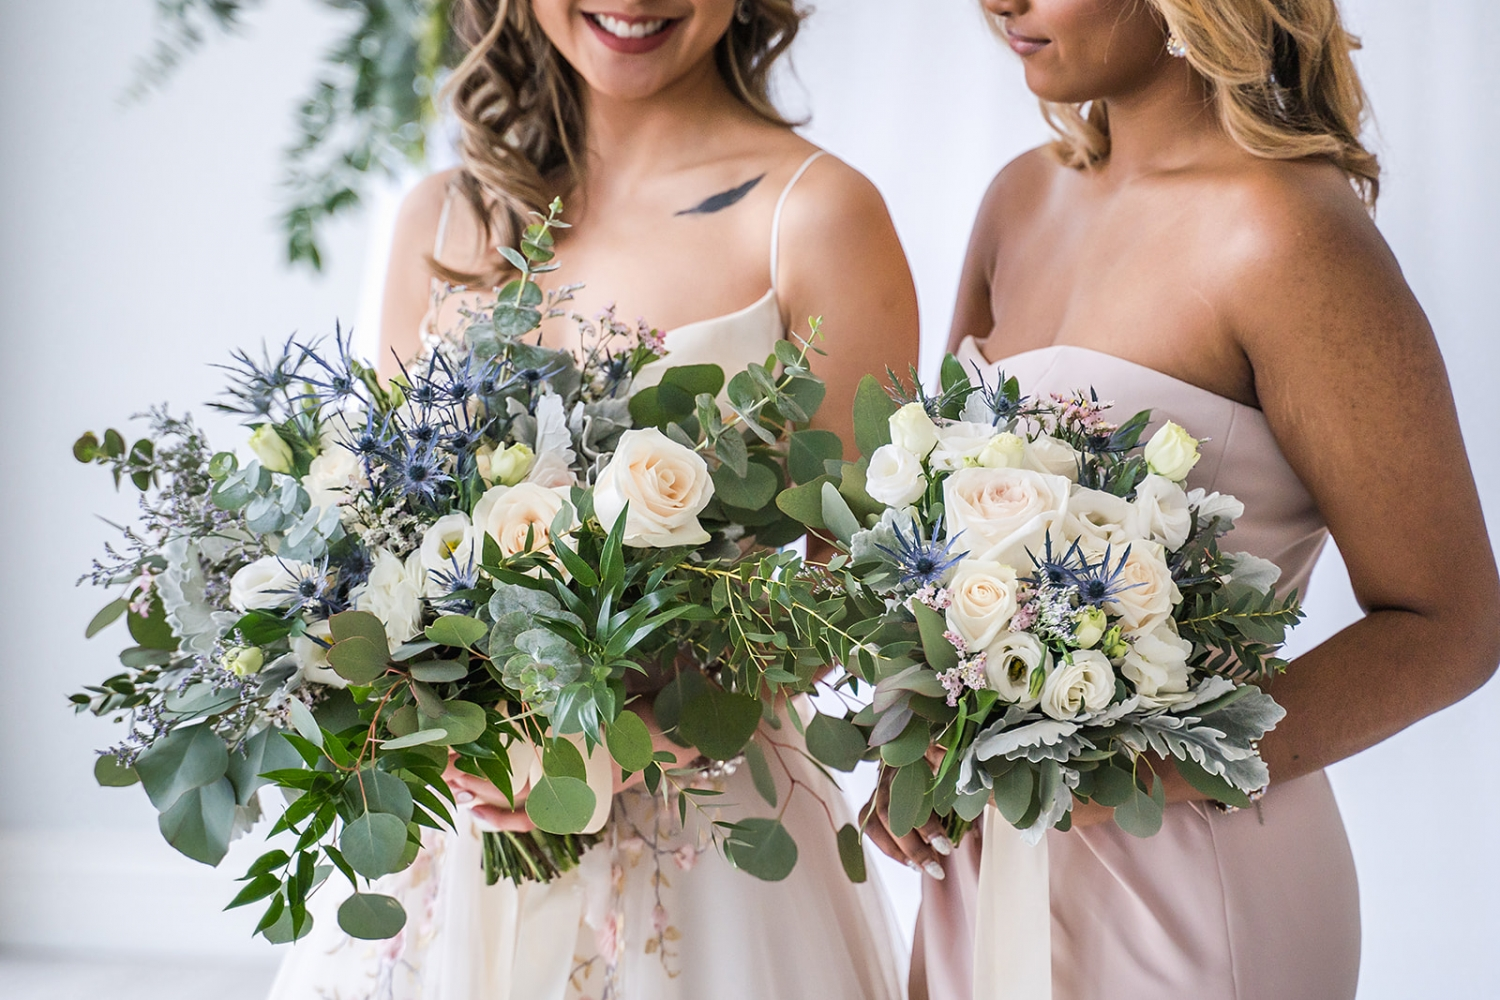 bride and maid of honor holding bouquets